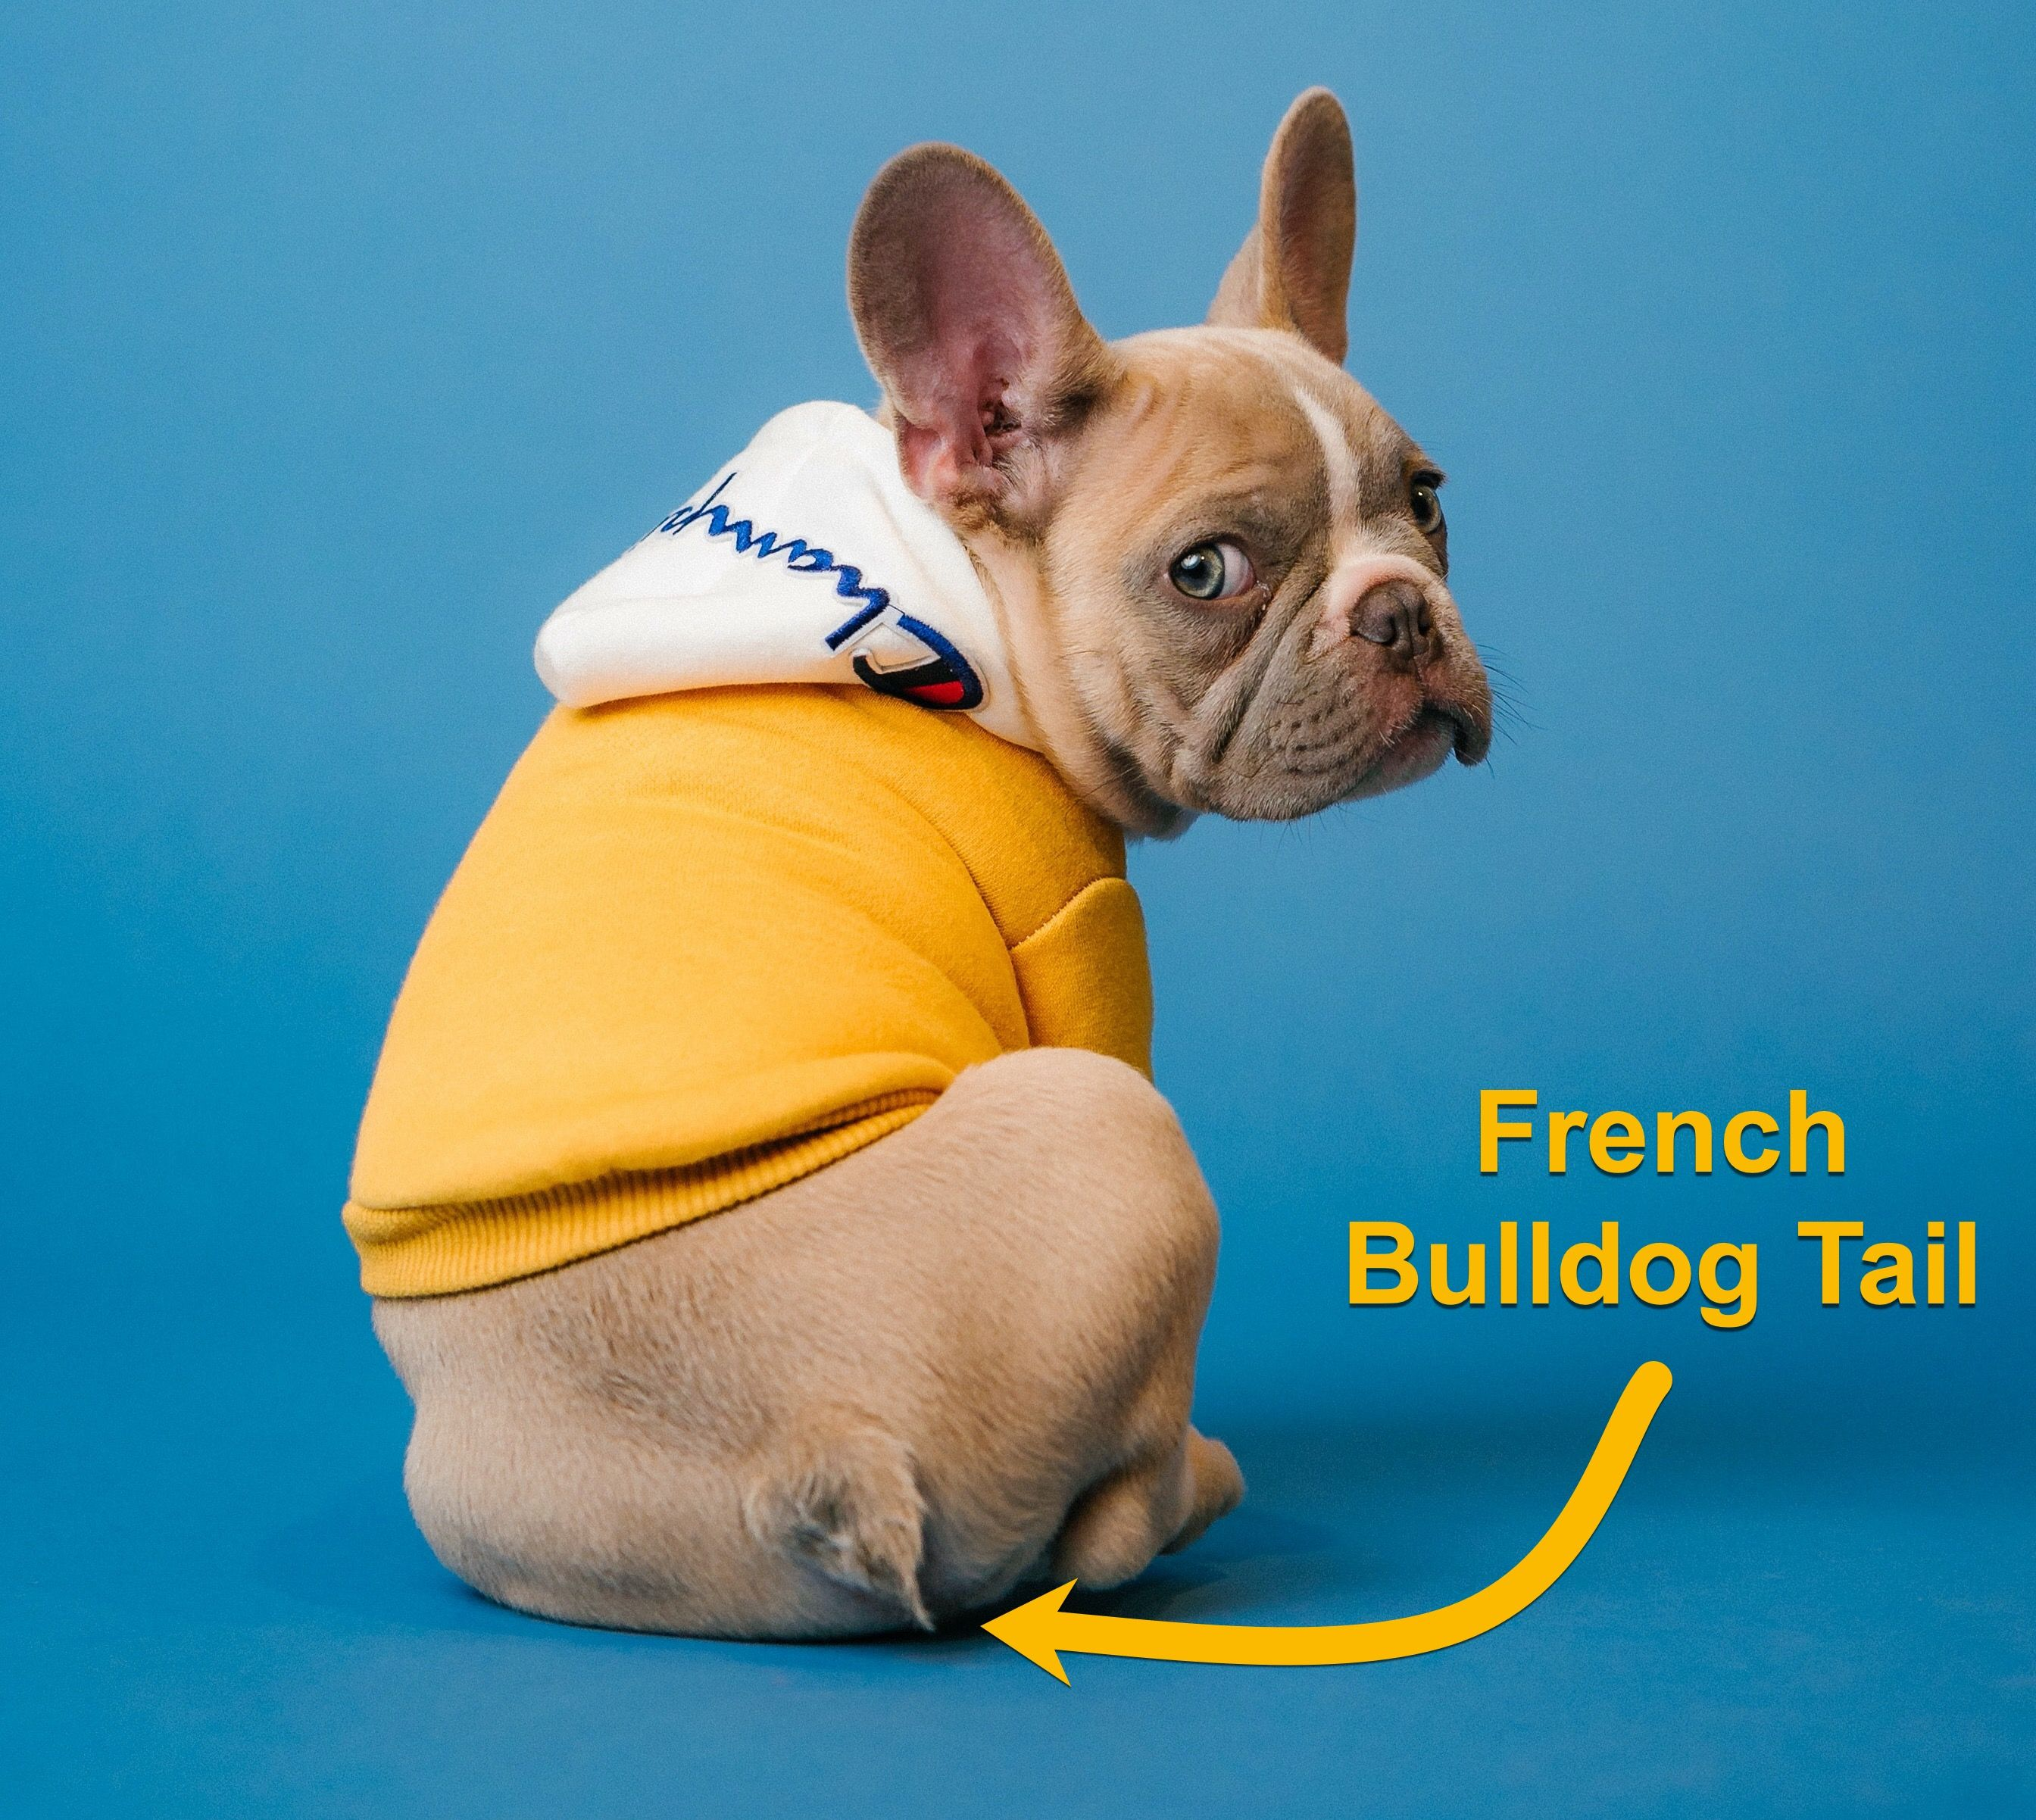 The French Bulldog Tail Is Their Tail Natural Or Is It Cropped In 2020 French Bulldog French Bulldog Owner Bulldog